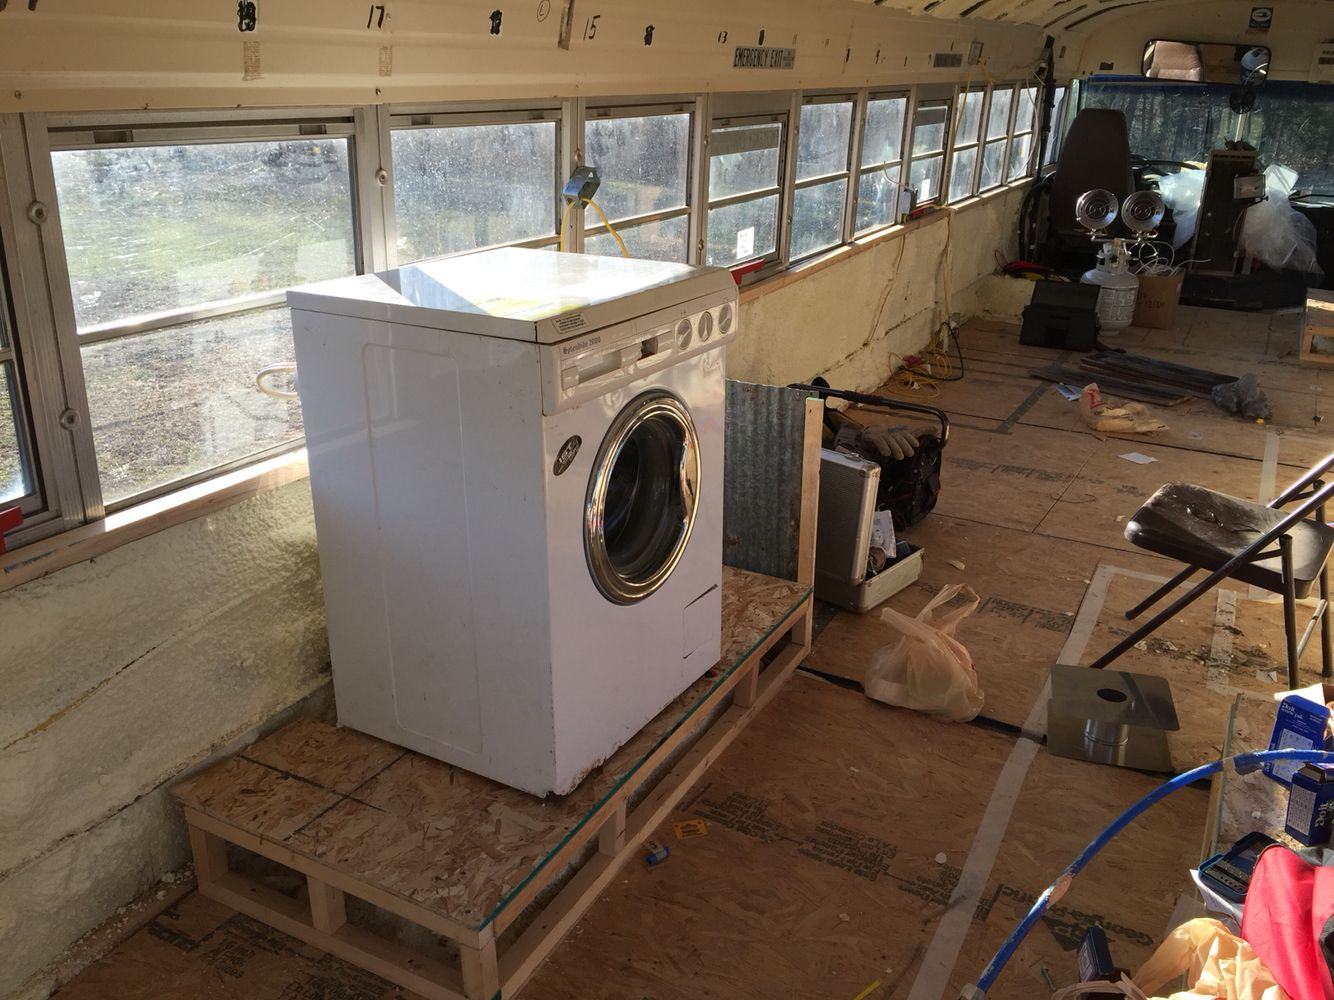 tiny house washer dryer. RV Washer/dryer Installed - Tiny House School Bus Conversion, Tristan Beache Washer Dryer